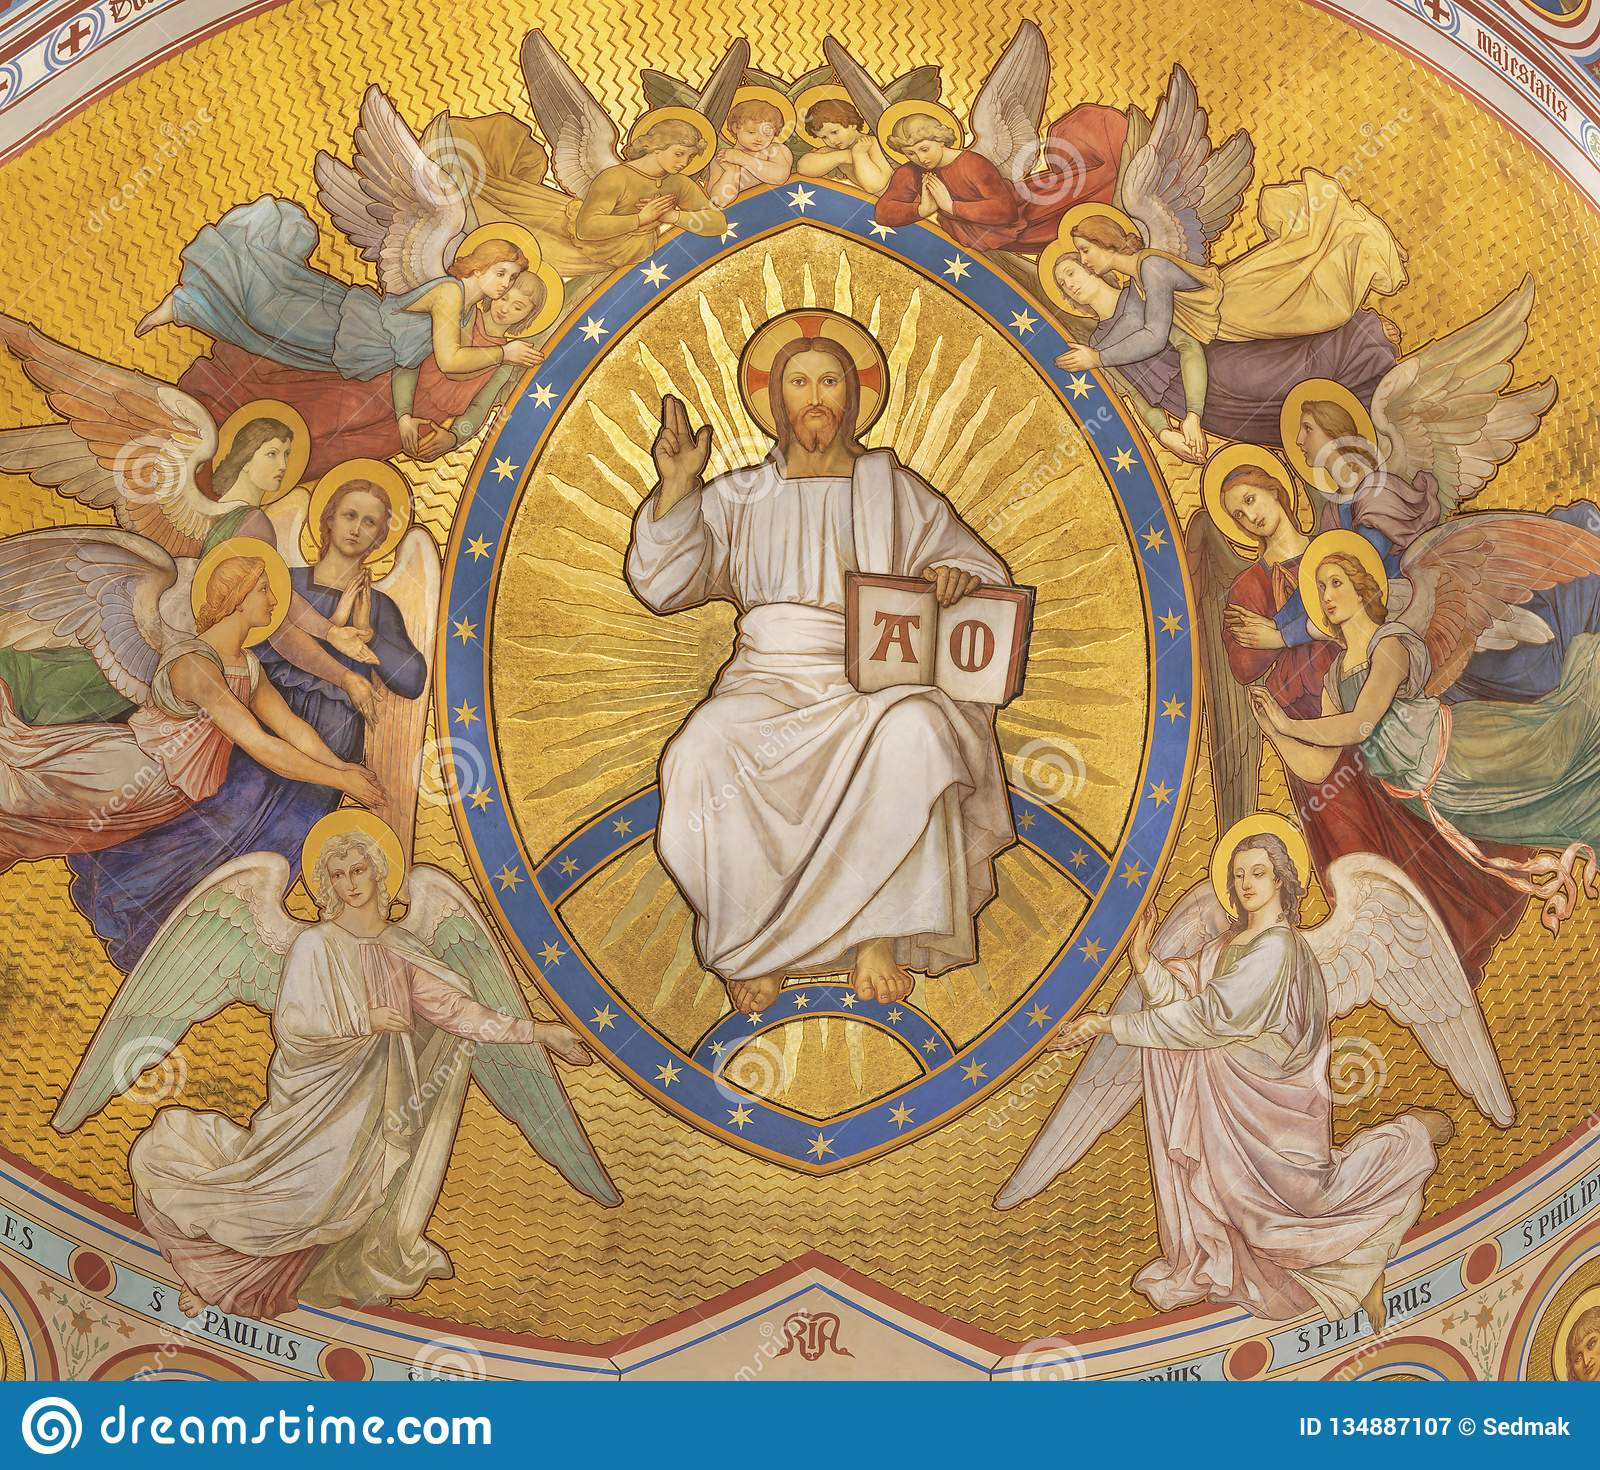 PRAGUE, CZECH REPUBLIC - OCTOBER 17, 2018: The fresco of Christ the Pantokrator among the angels